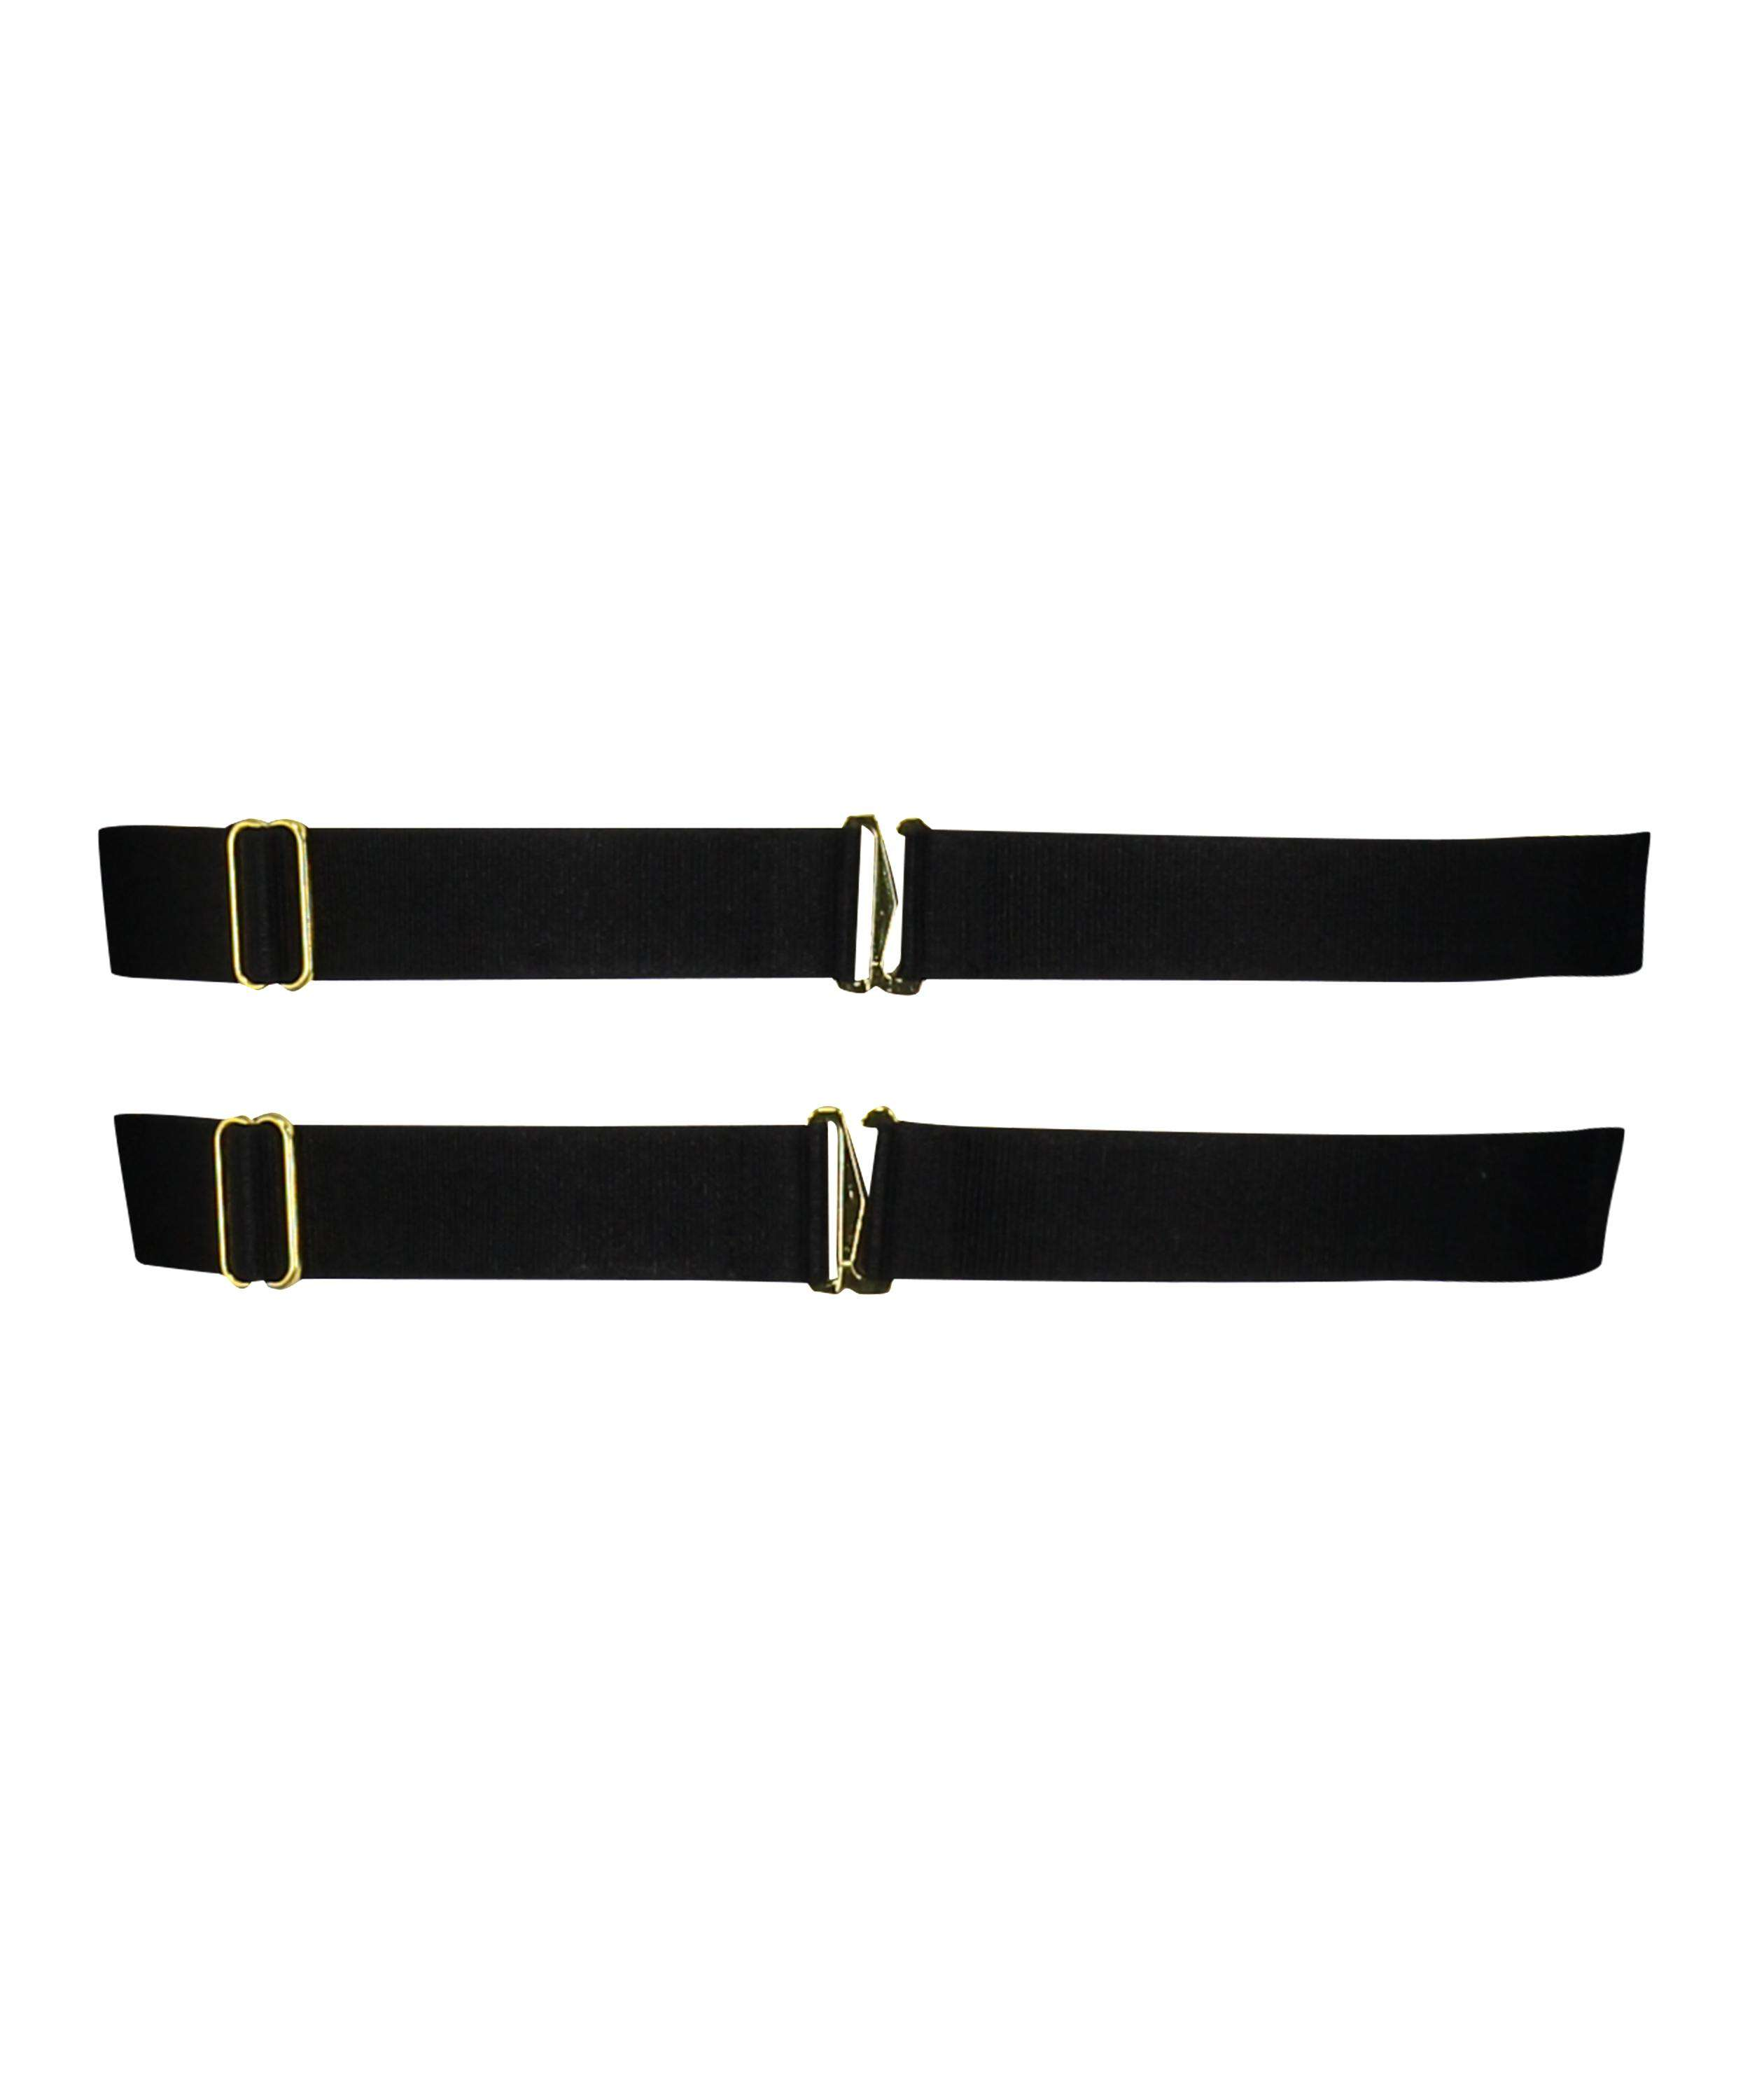 Private Hold Up Suspenders, Black, main